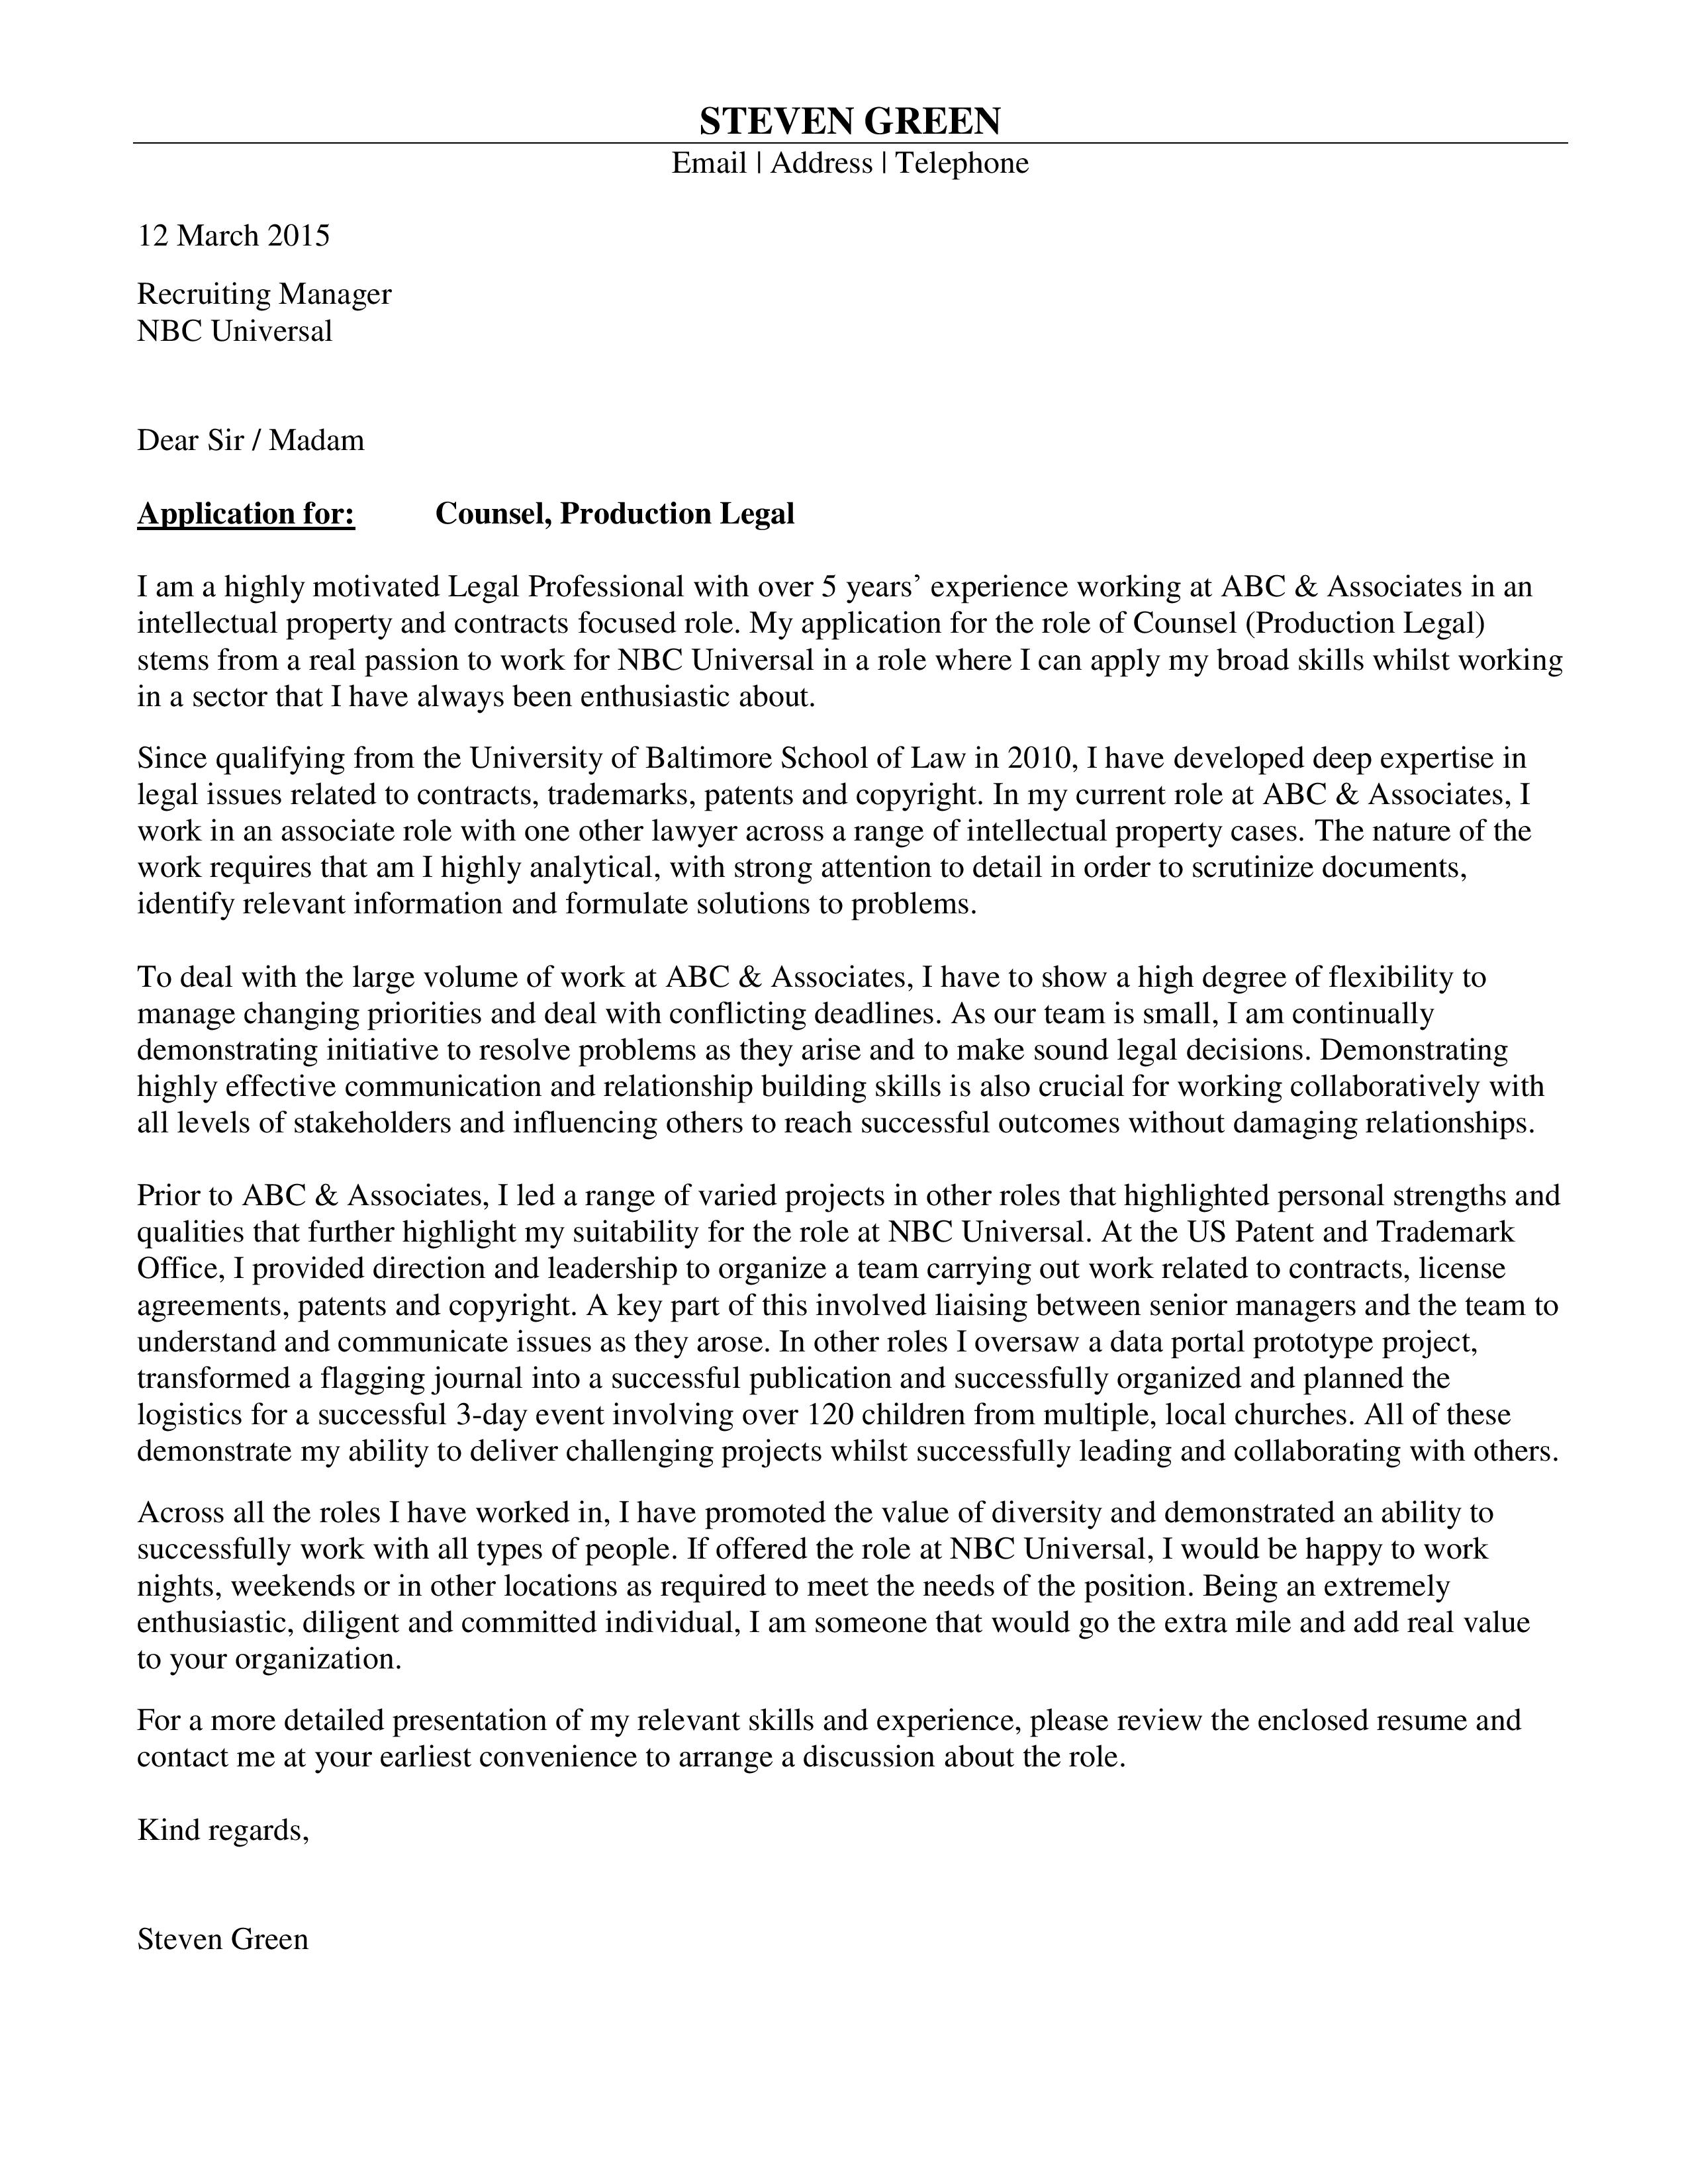 Consulting Cover Letter Harvard On